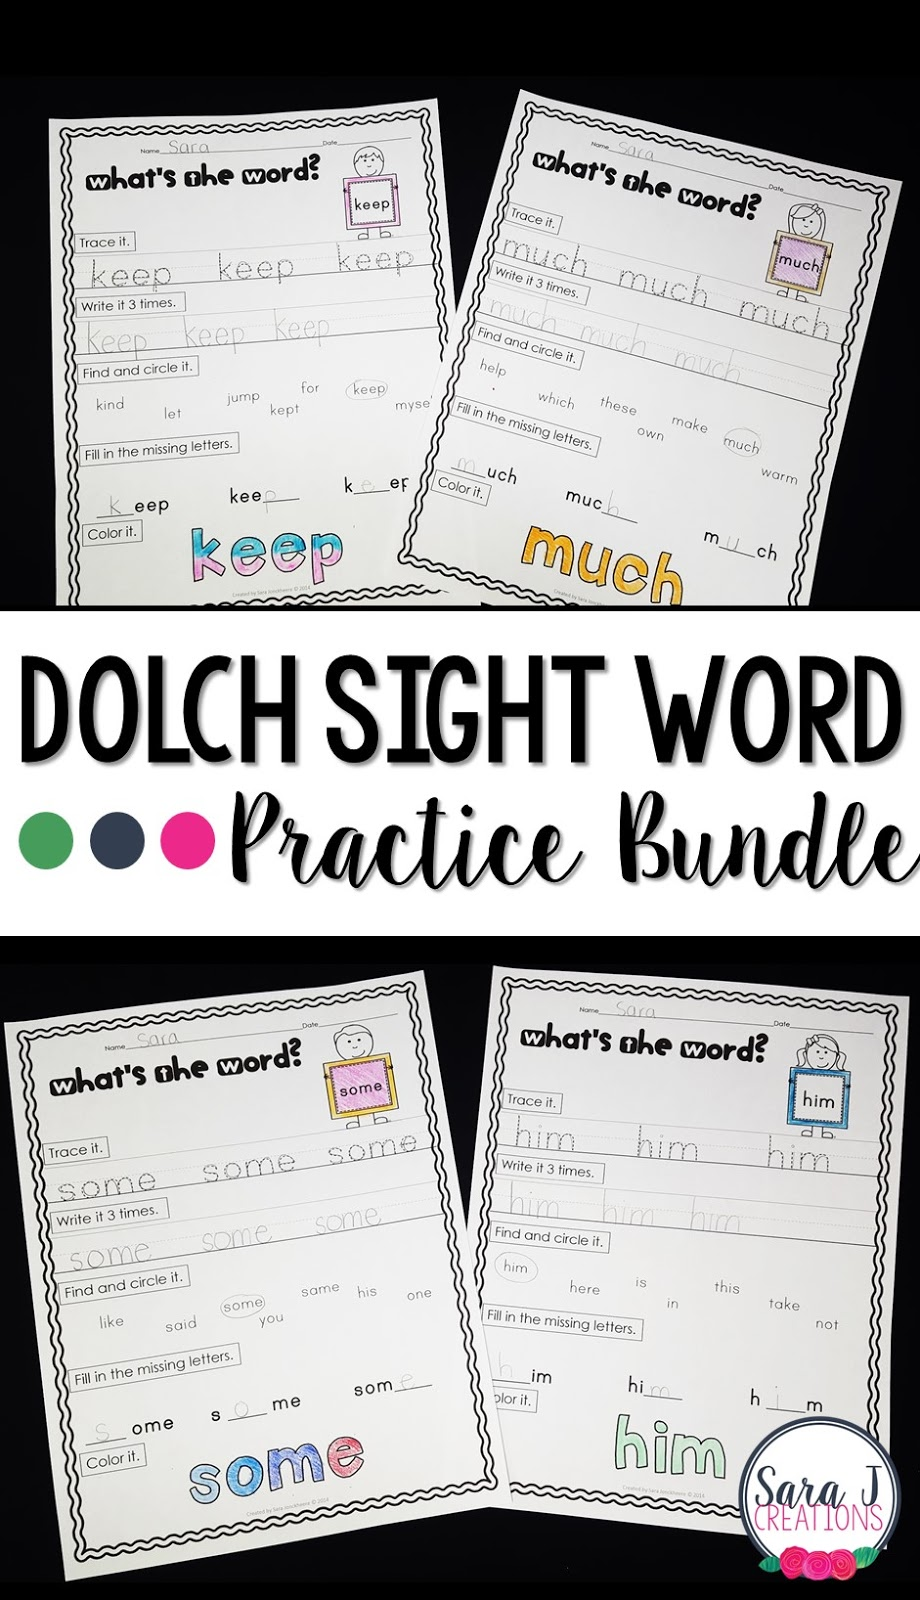 Dolch sight word practice printables are an easy way to have students practice tracing, writing, identifying and coloring words.